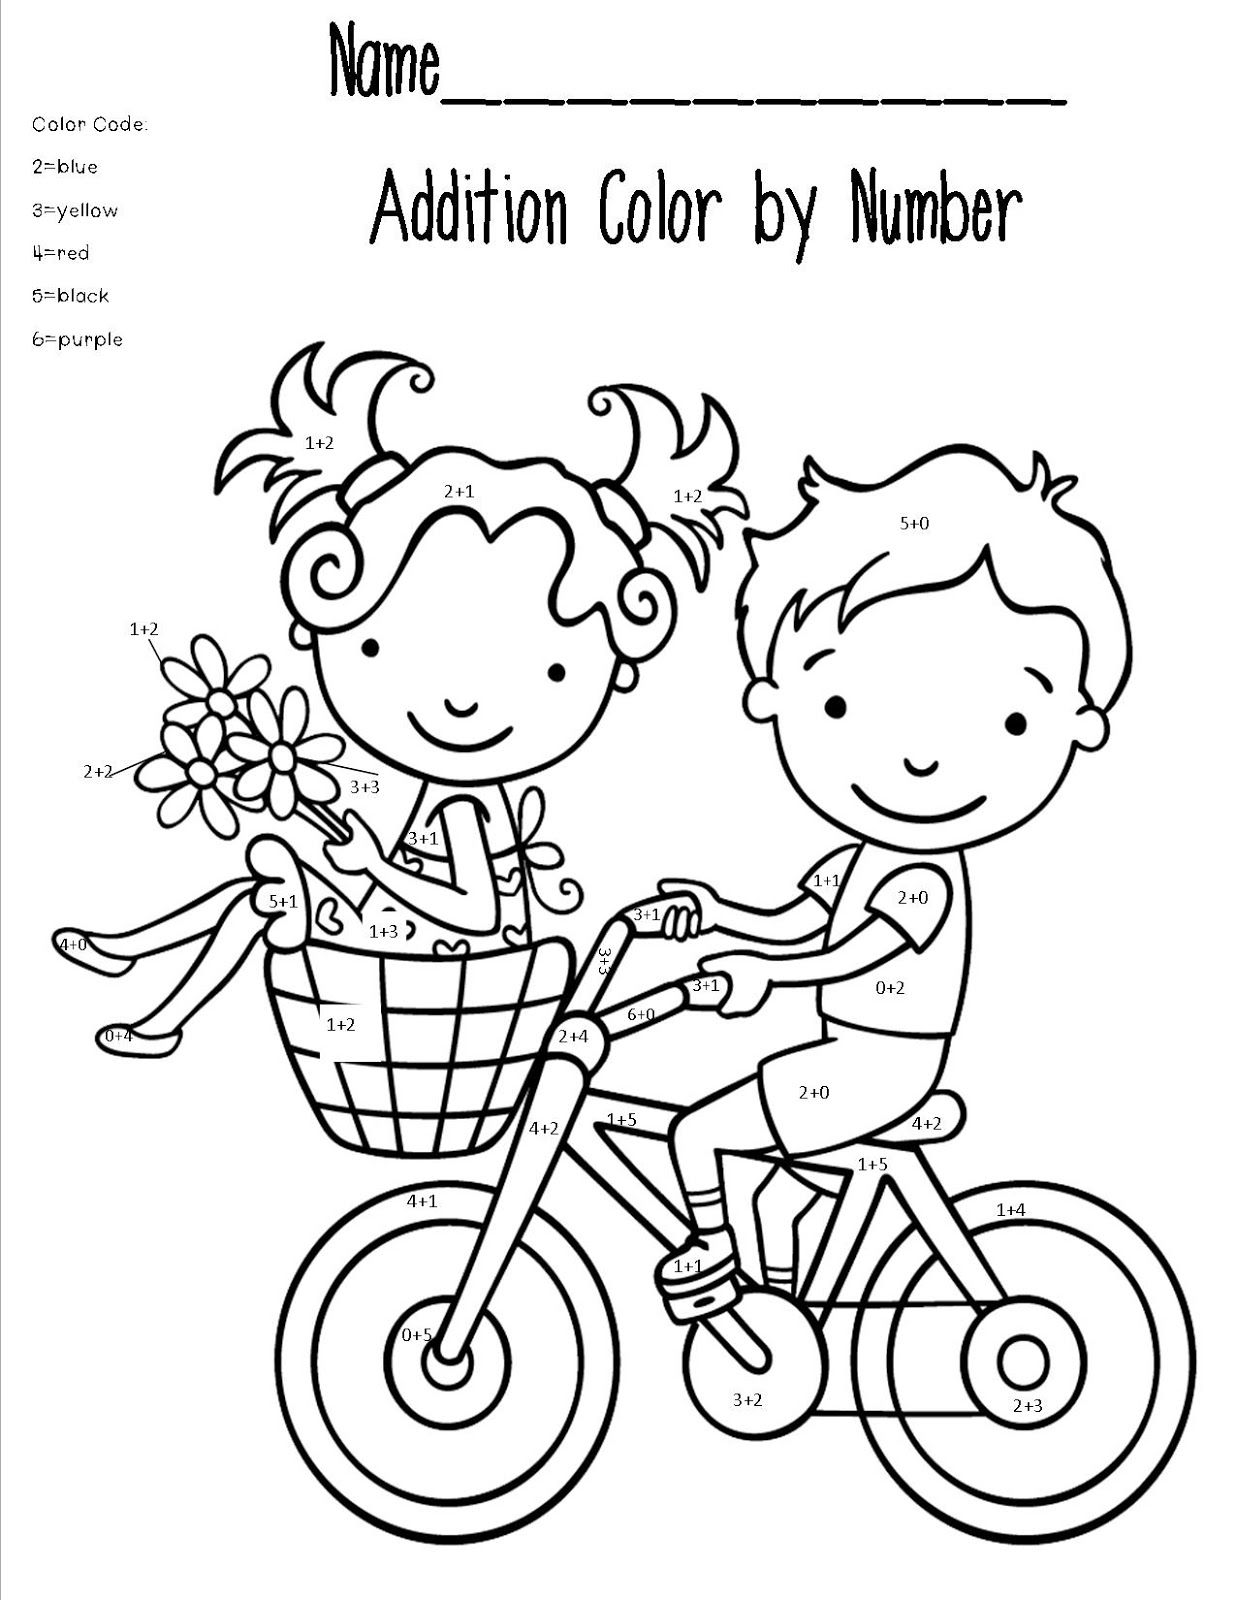 Math Coloring Pages Math coloring worksheets, Addition